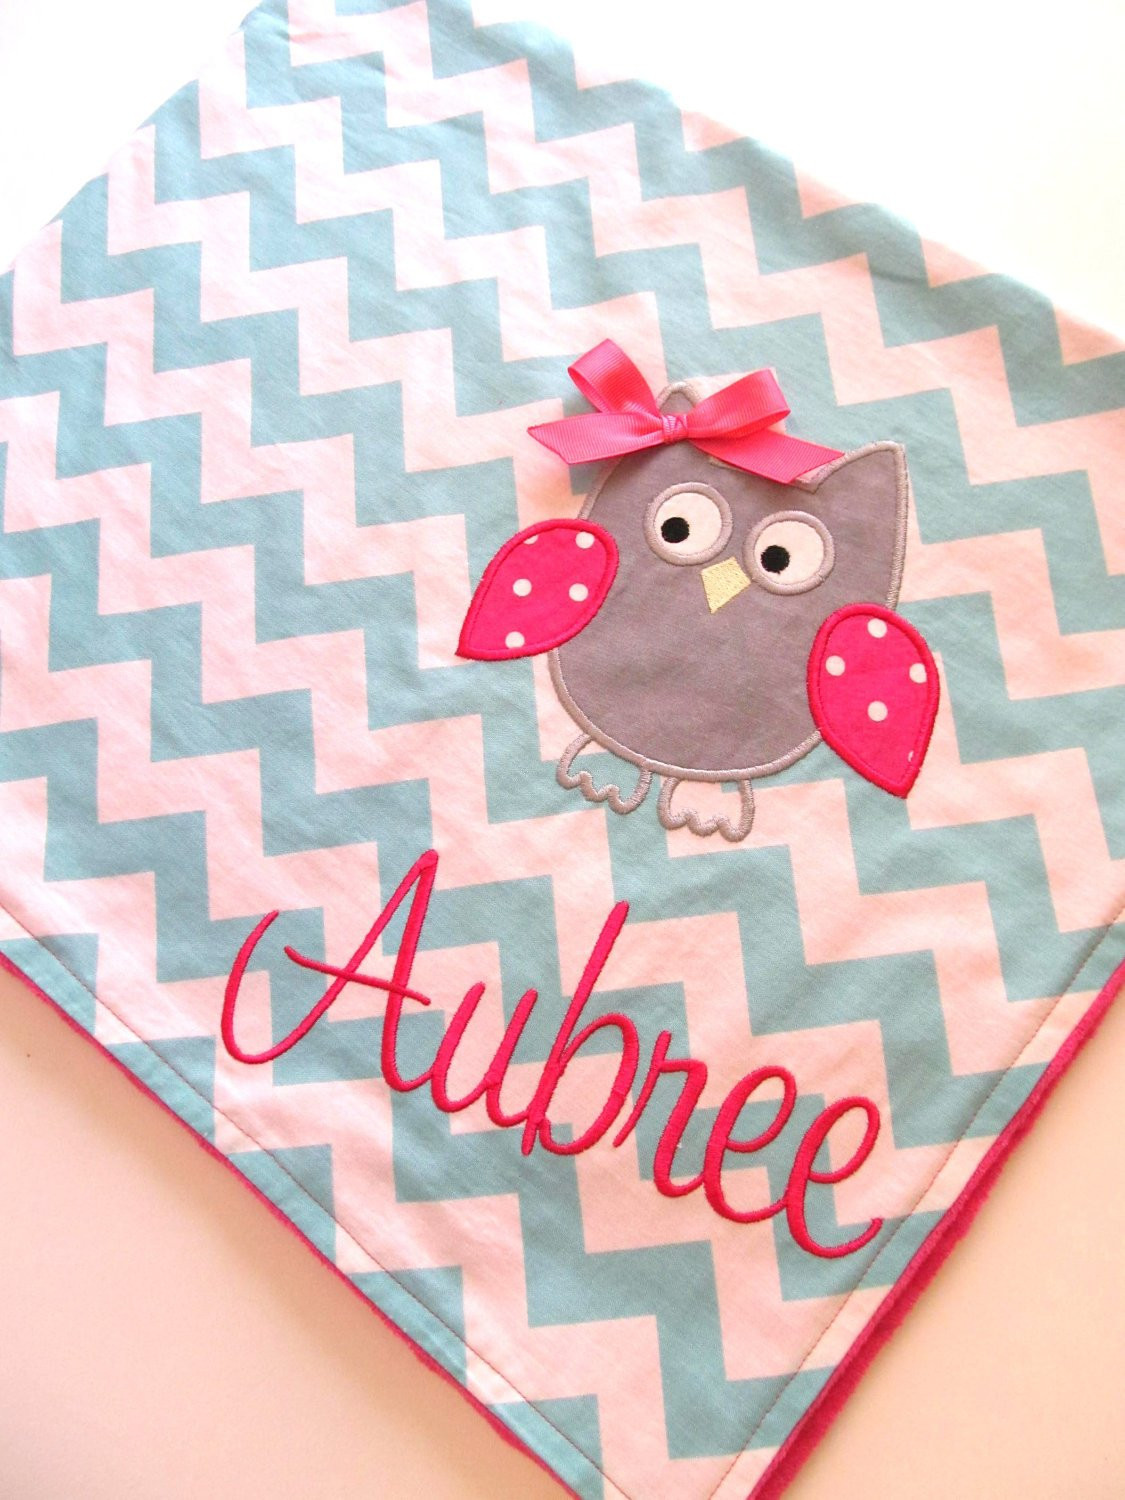 Unique Baby Blankets Elegant U Haul Self Storage Personalized Blanket Of Innovative 40 Ideas Unique Baby Blankets